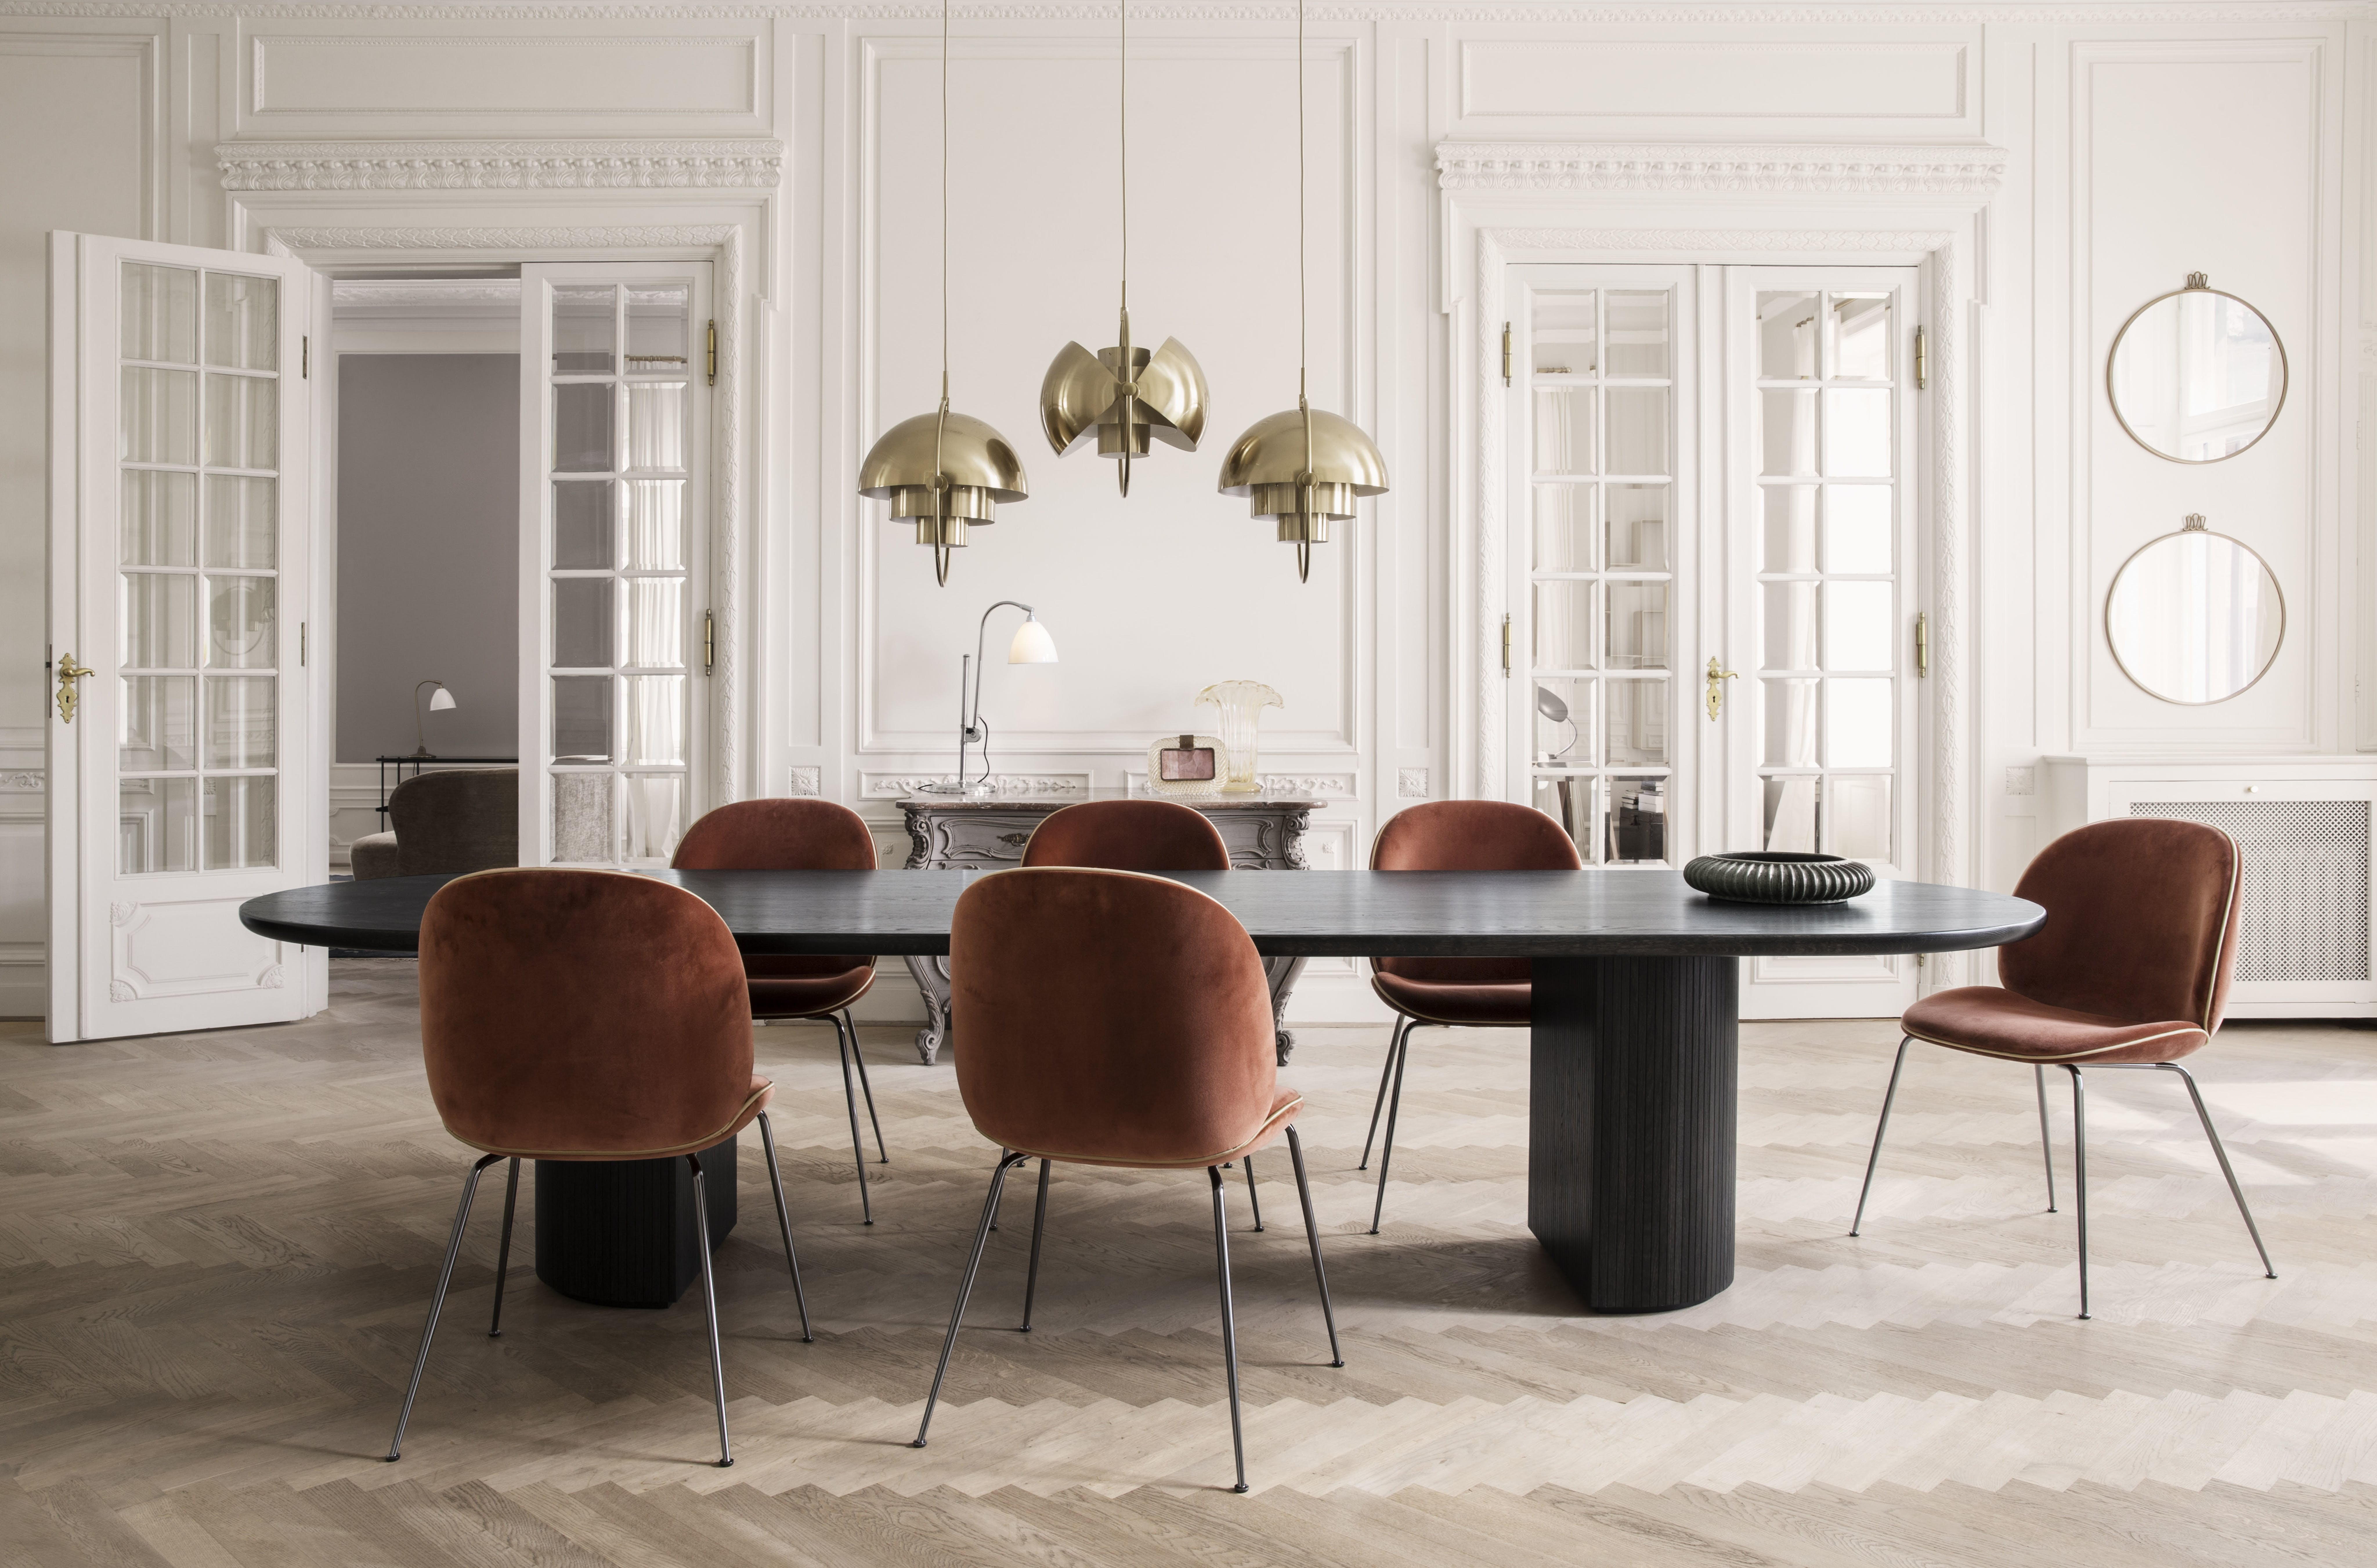 The Moon Dining Table By Gubi At Haute Living